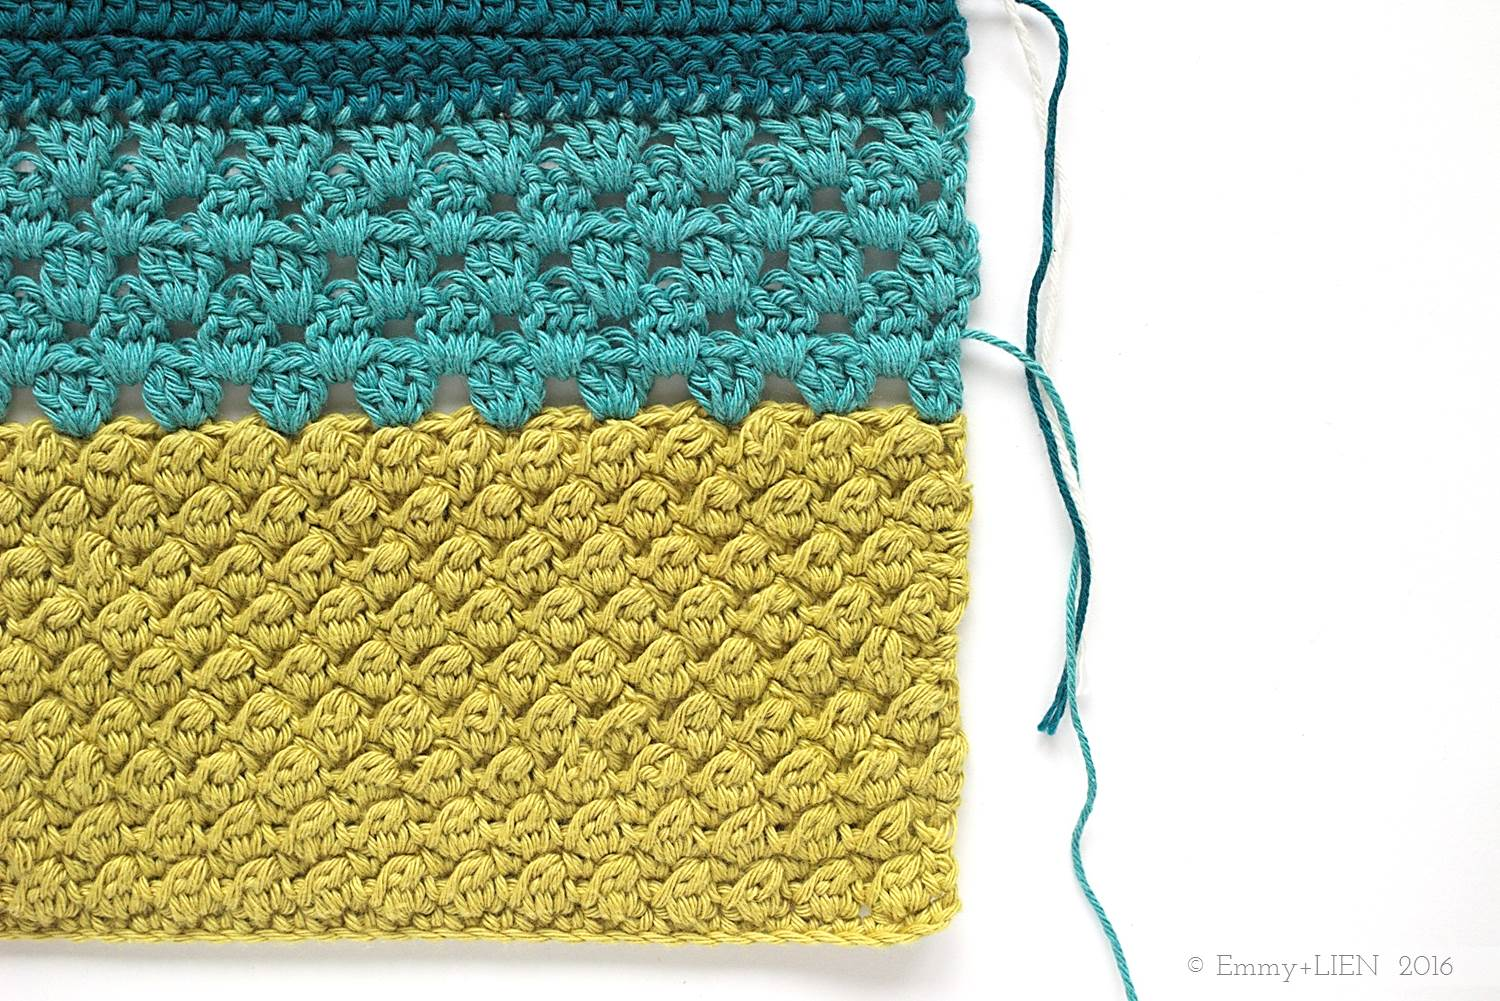 Part of the Dally Dahlia Blanket. Link to bobble stitch tutorial in post.